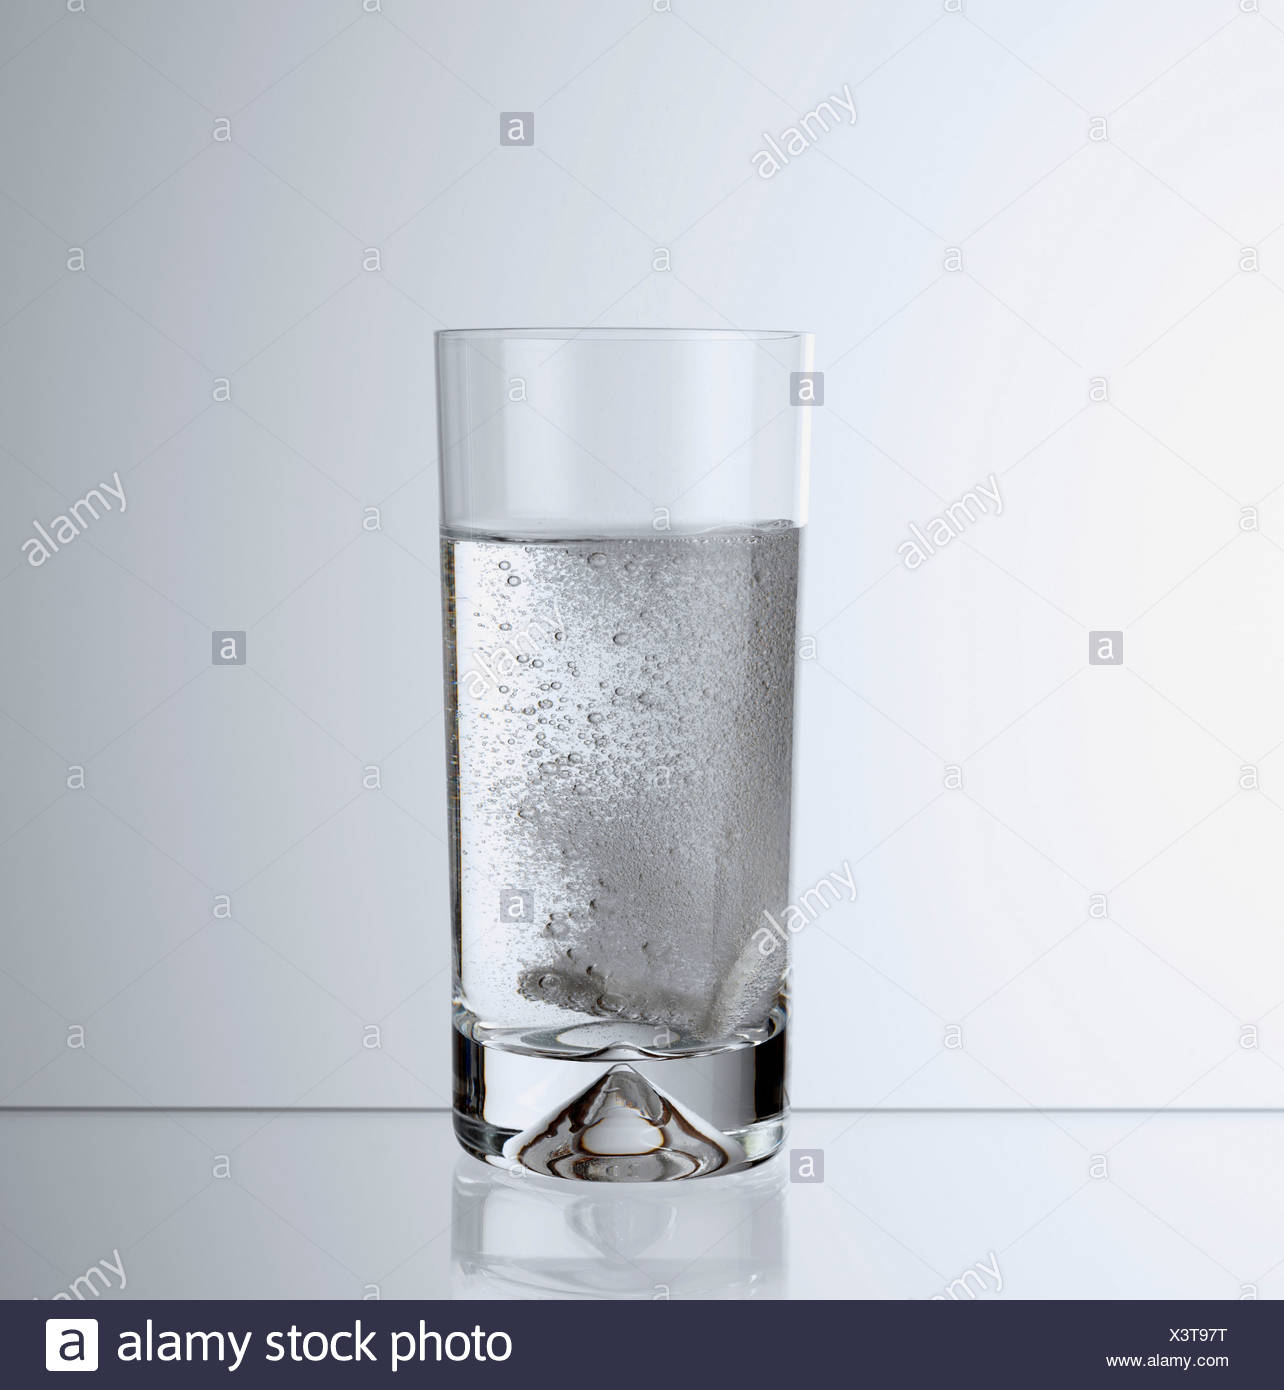 Glass of carbonated beverage - Stock Image